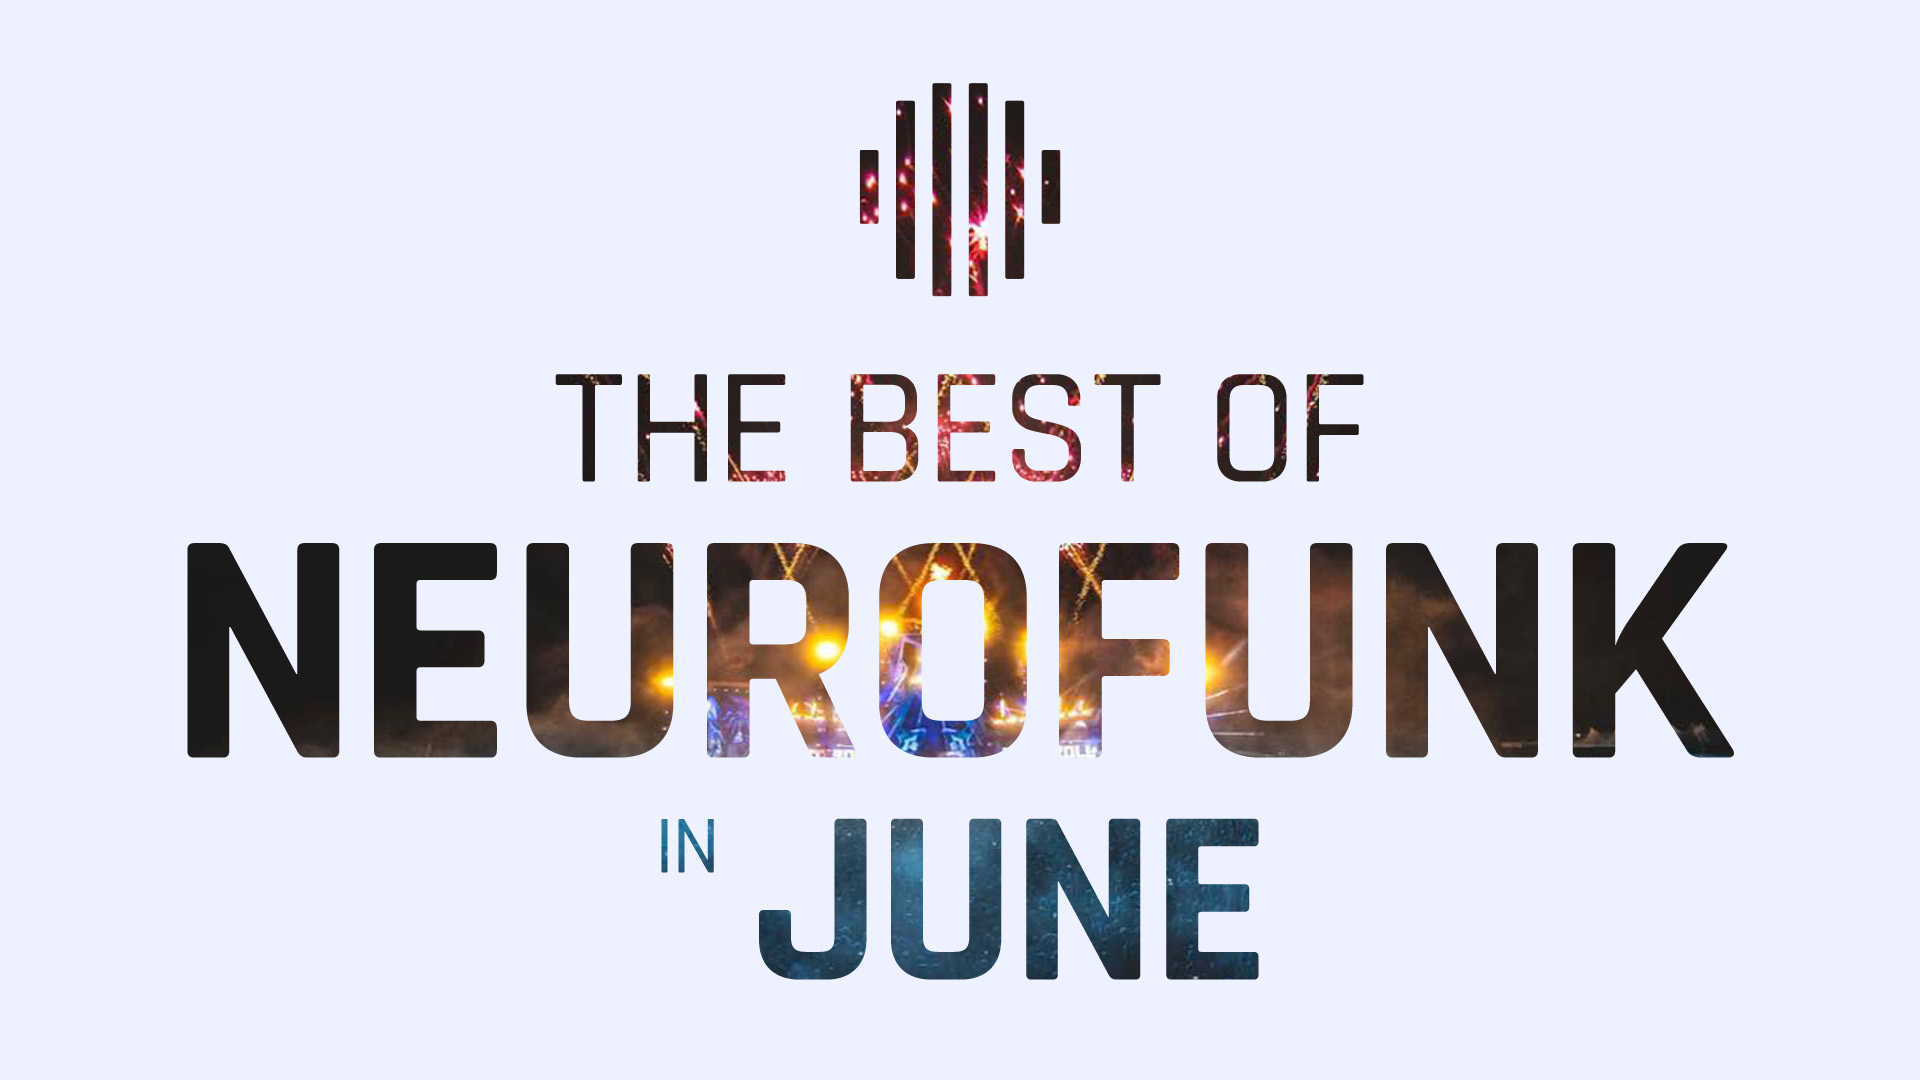 The best of Neurofunk in June